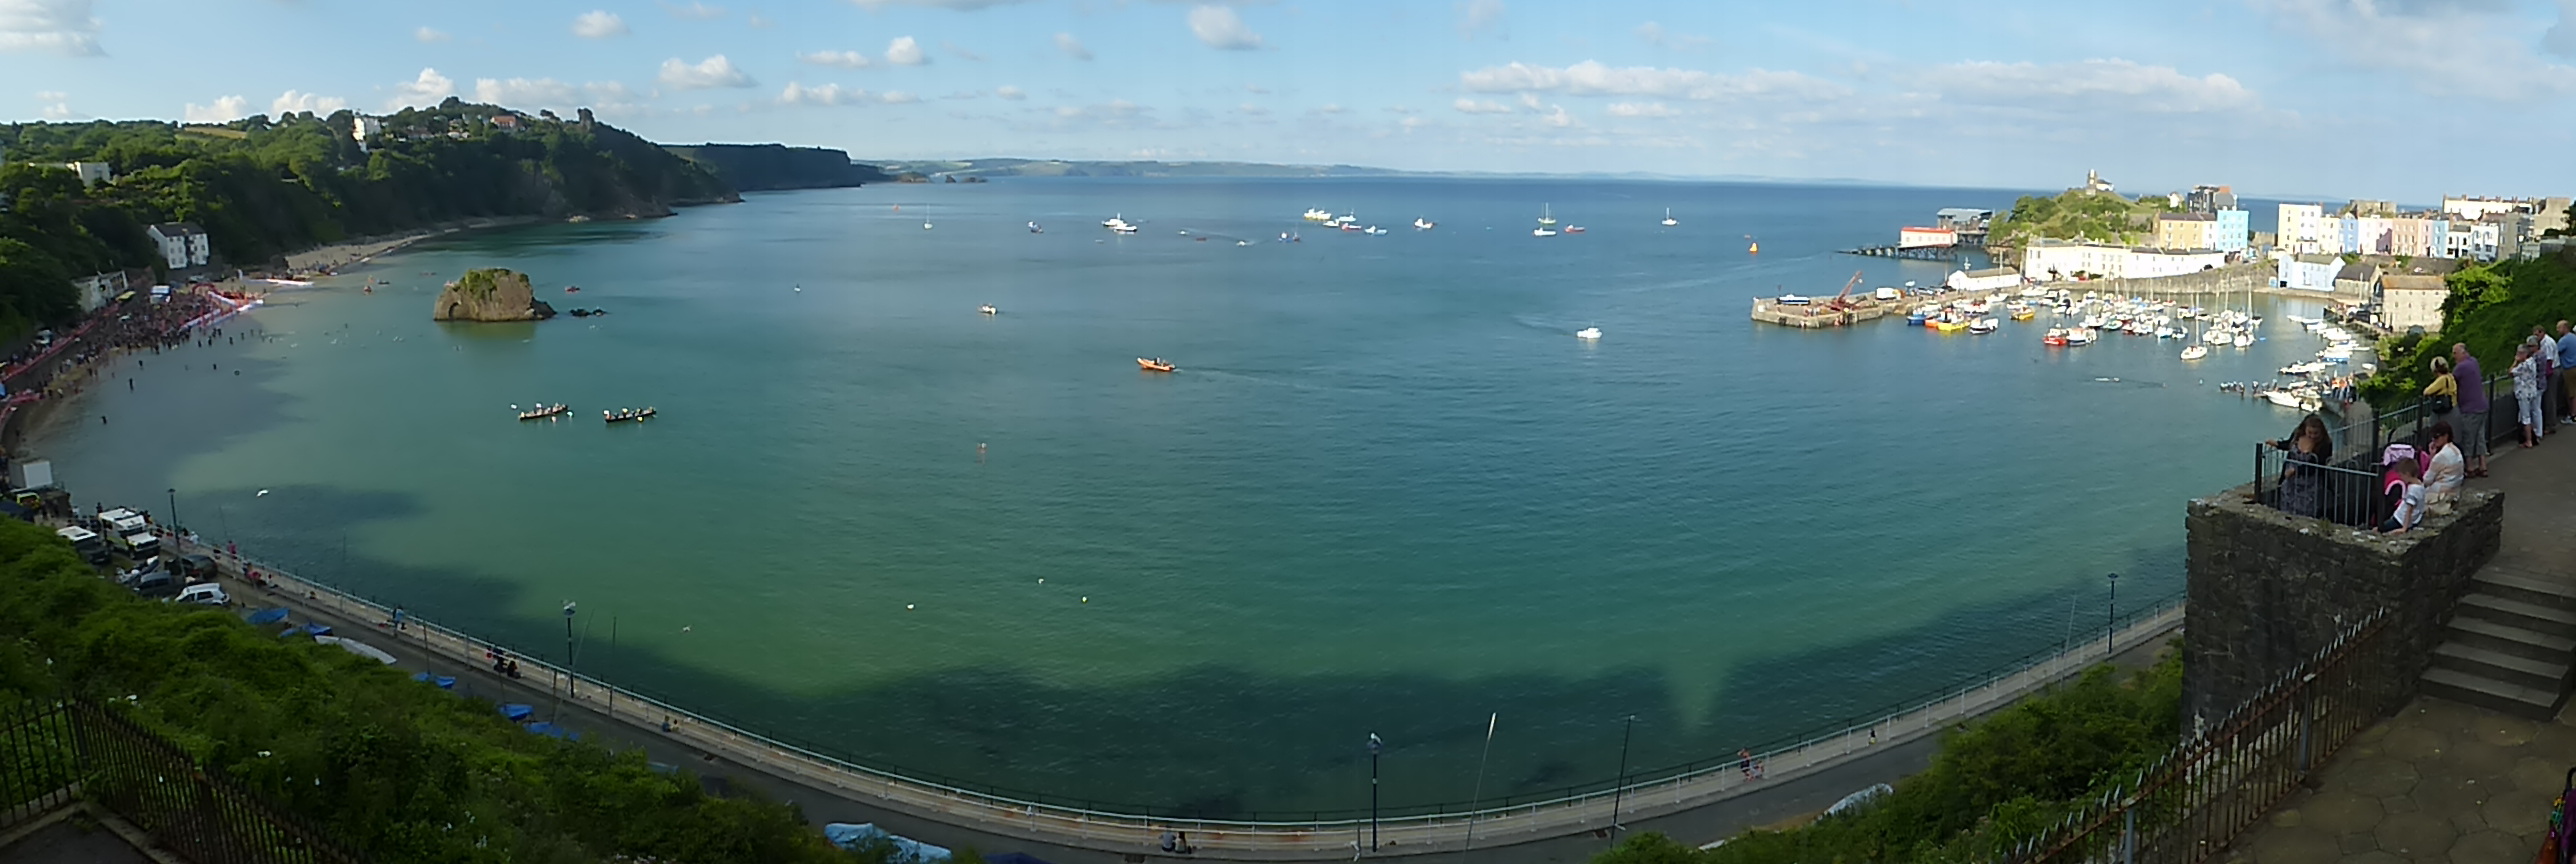 Tenby Harbour with swimmers waiting in the pen on the left hand side